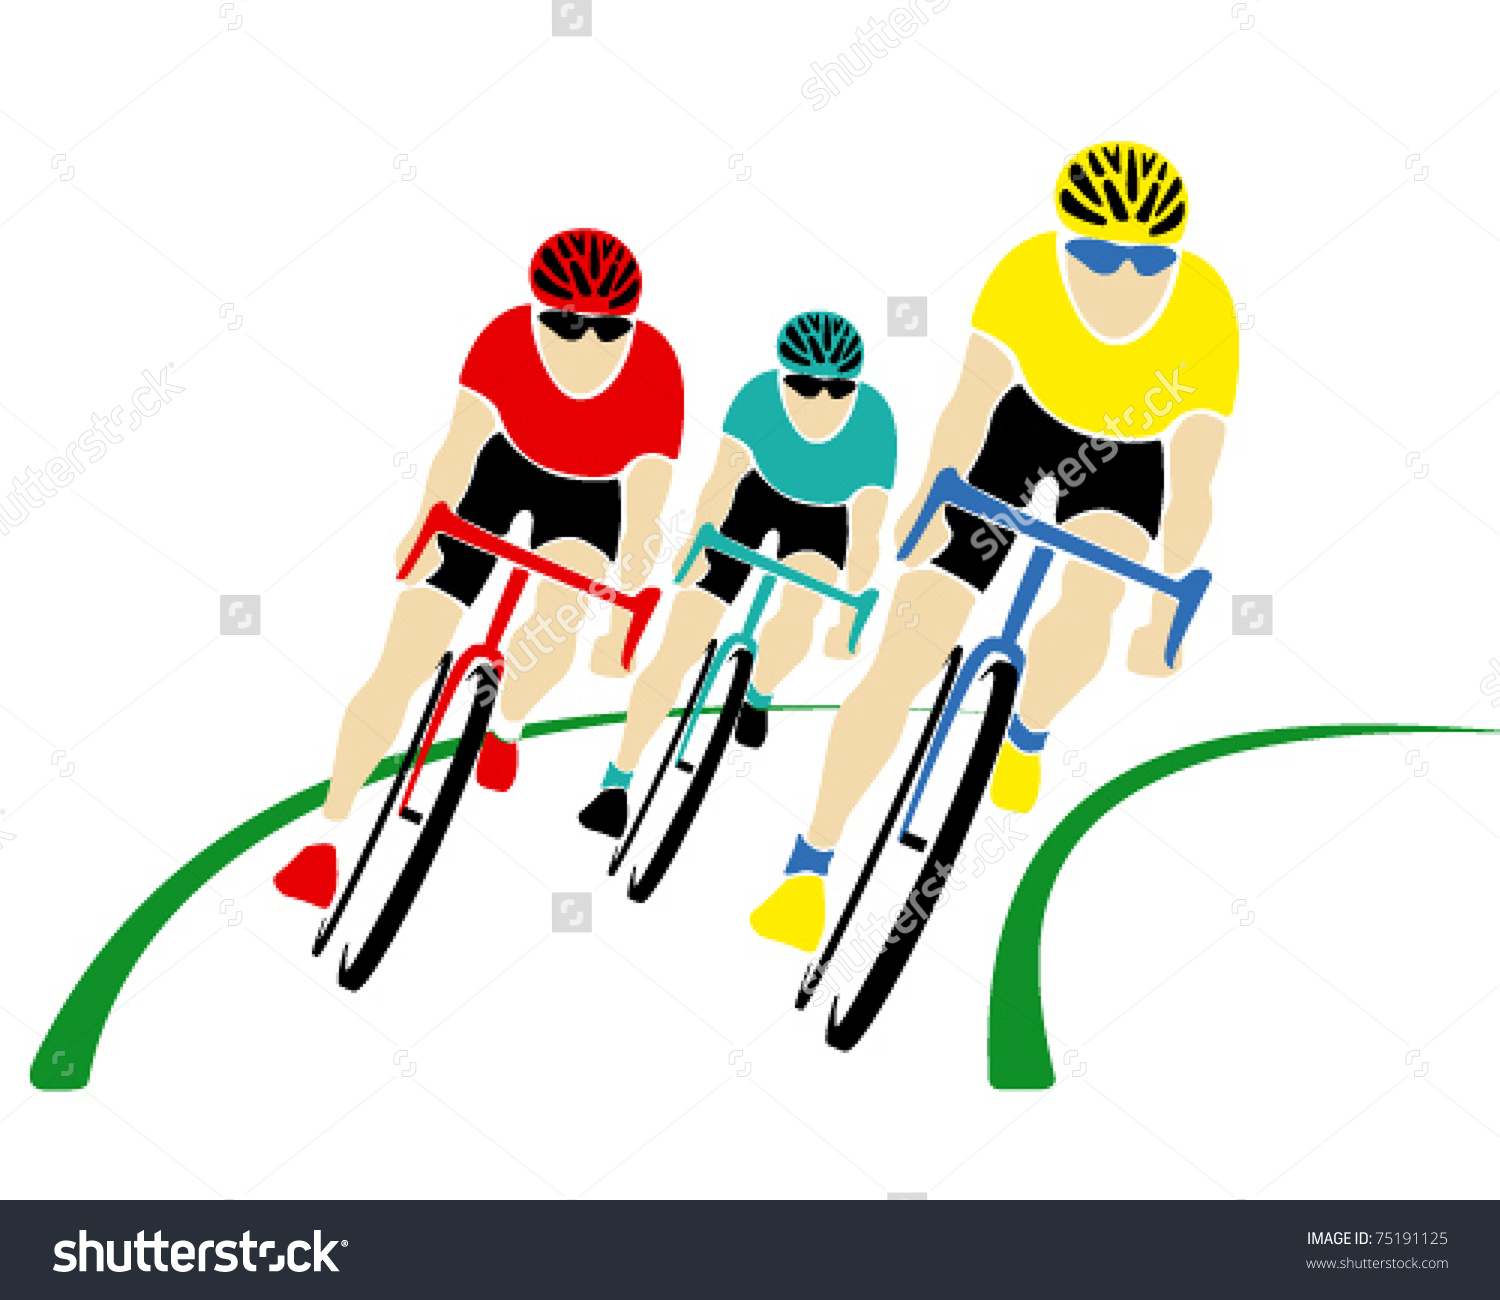 Cycle race clipart png black and white library Cycle race clipart - ClipartFest png black and white library